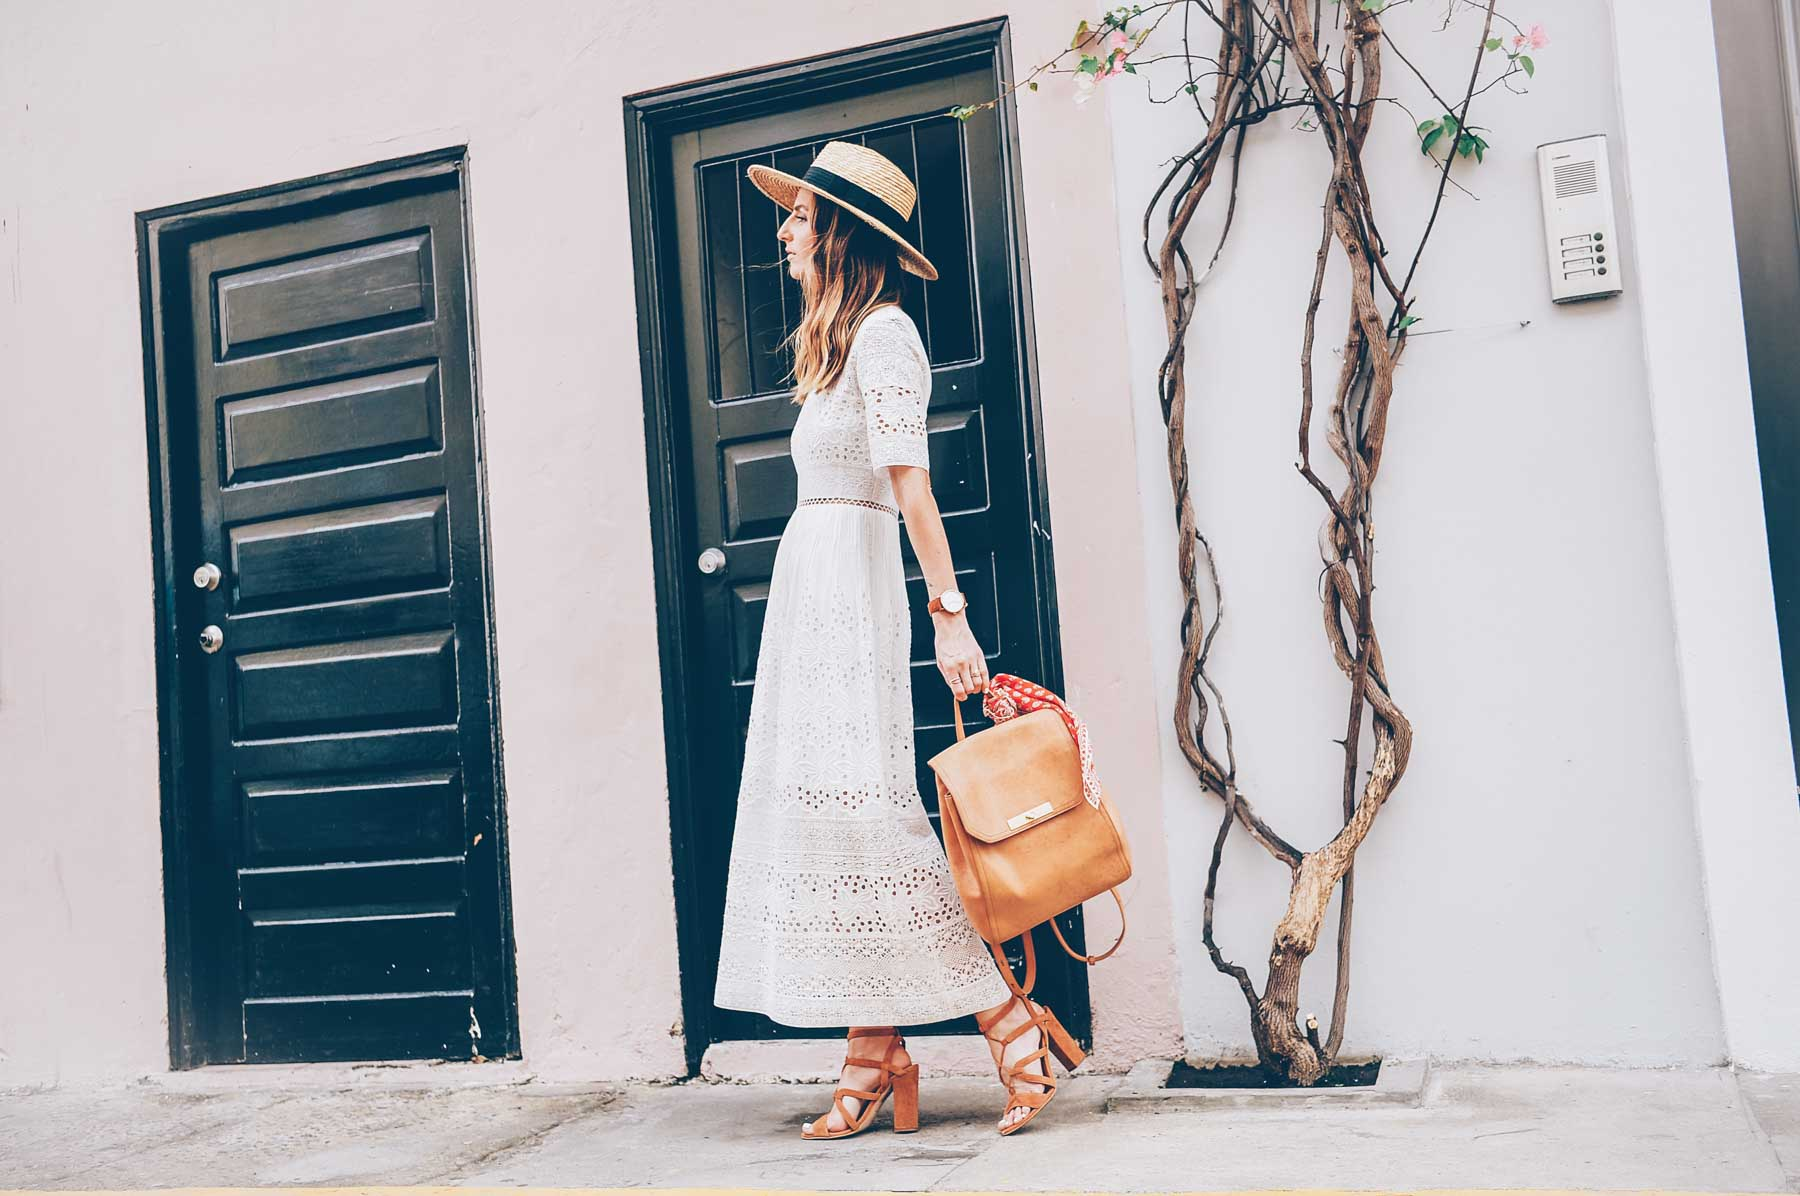 Jess Kirby styling a white embroidered maxi dress and tan leather backpack for summer